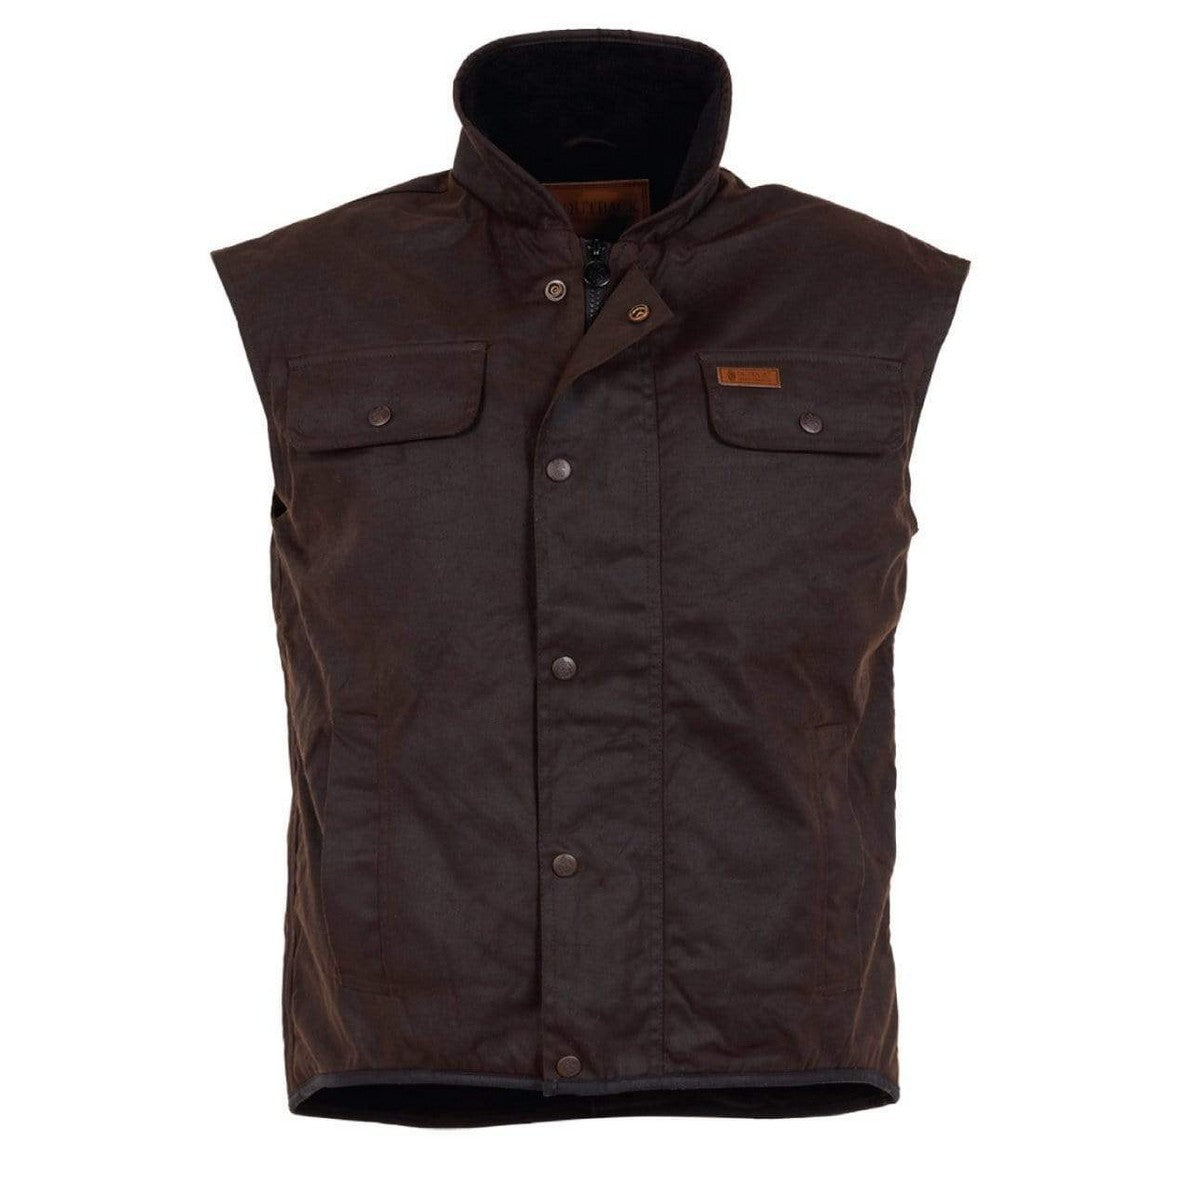 Image of Outback Oilskin Vest Fleece Linded